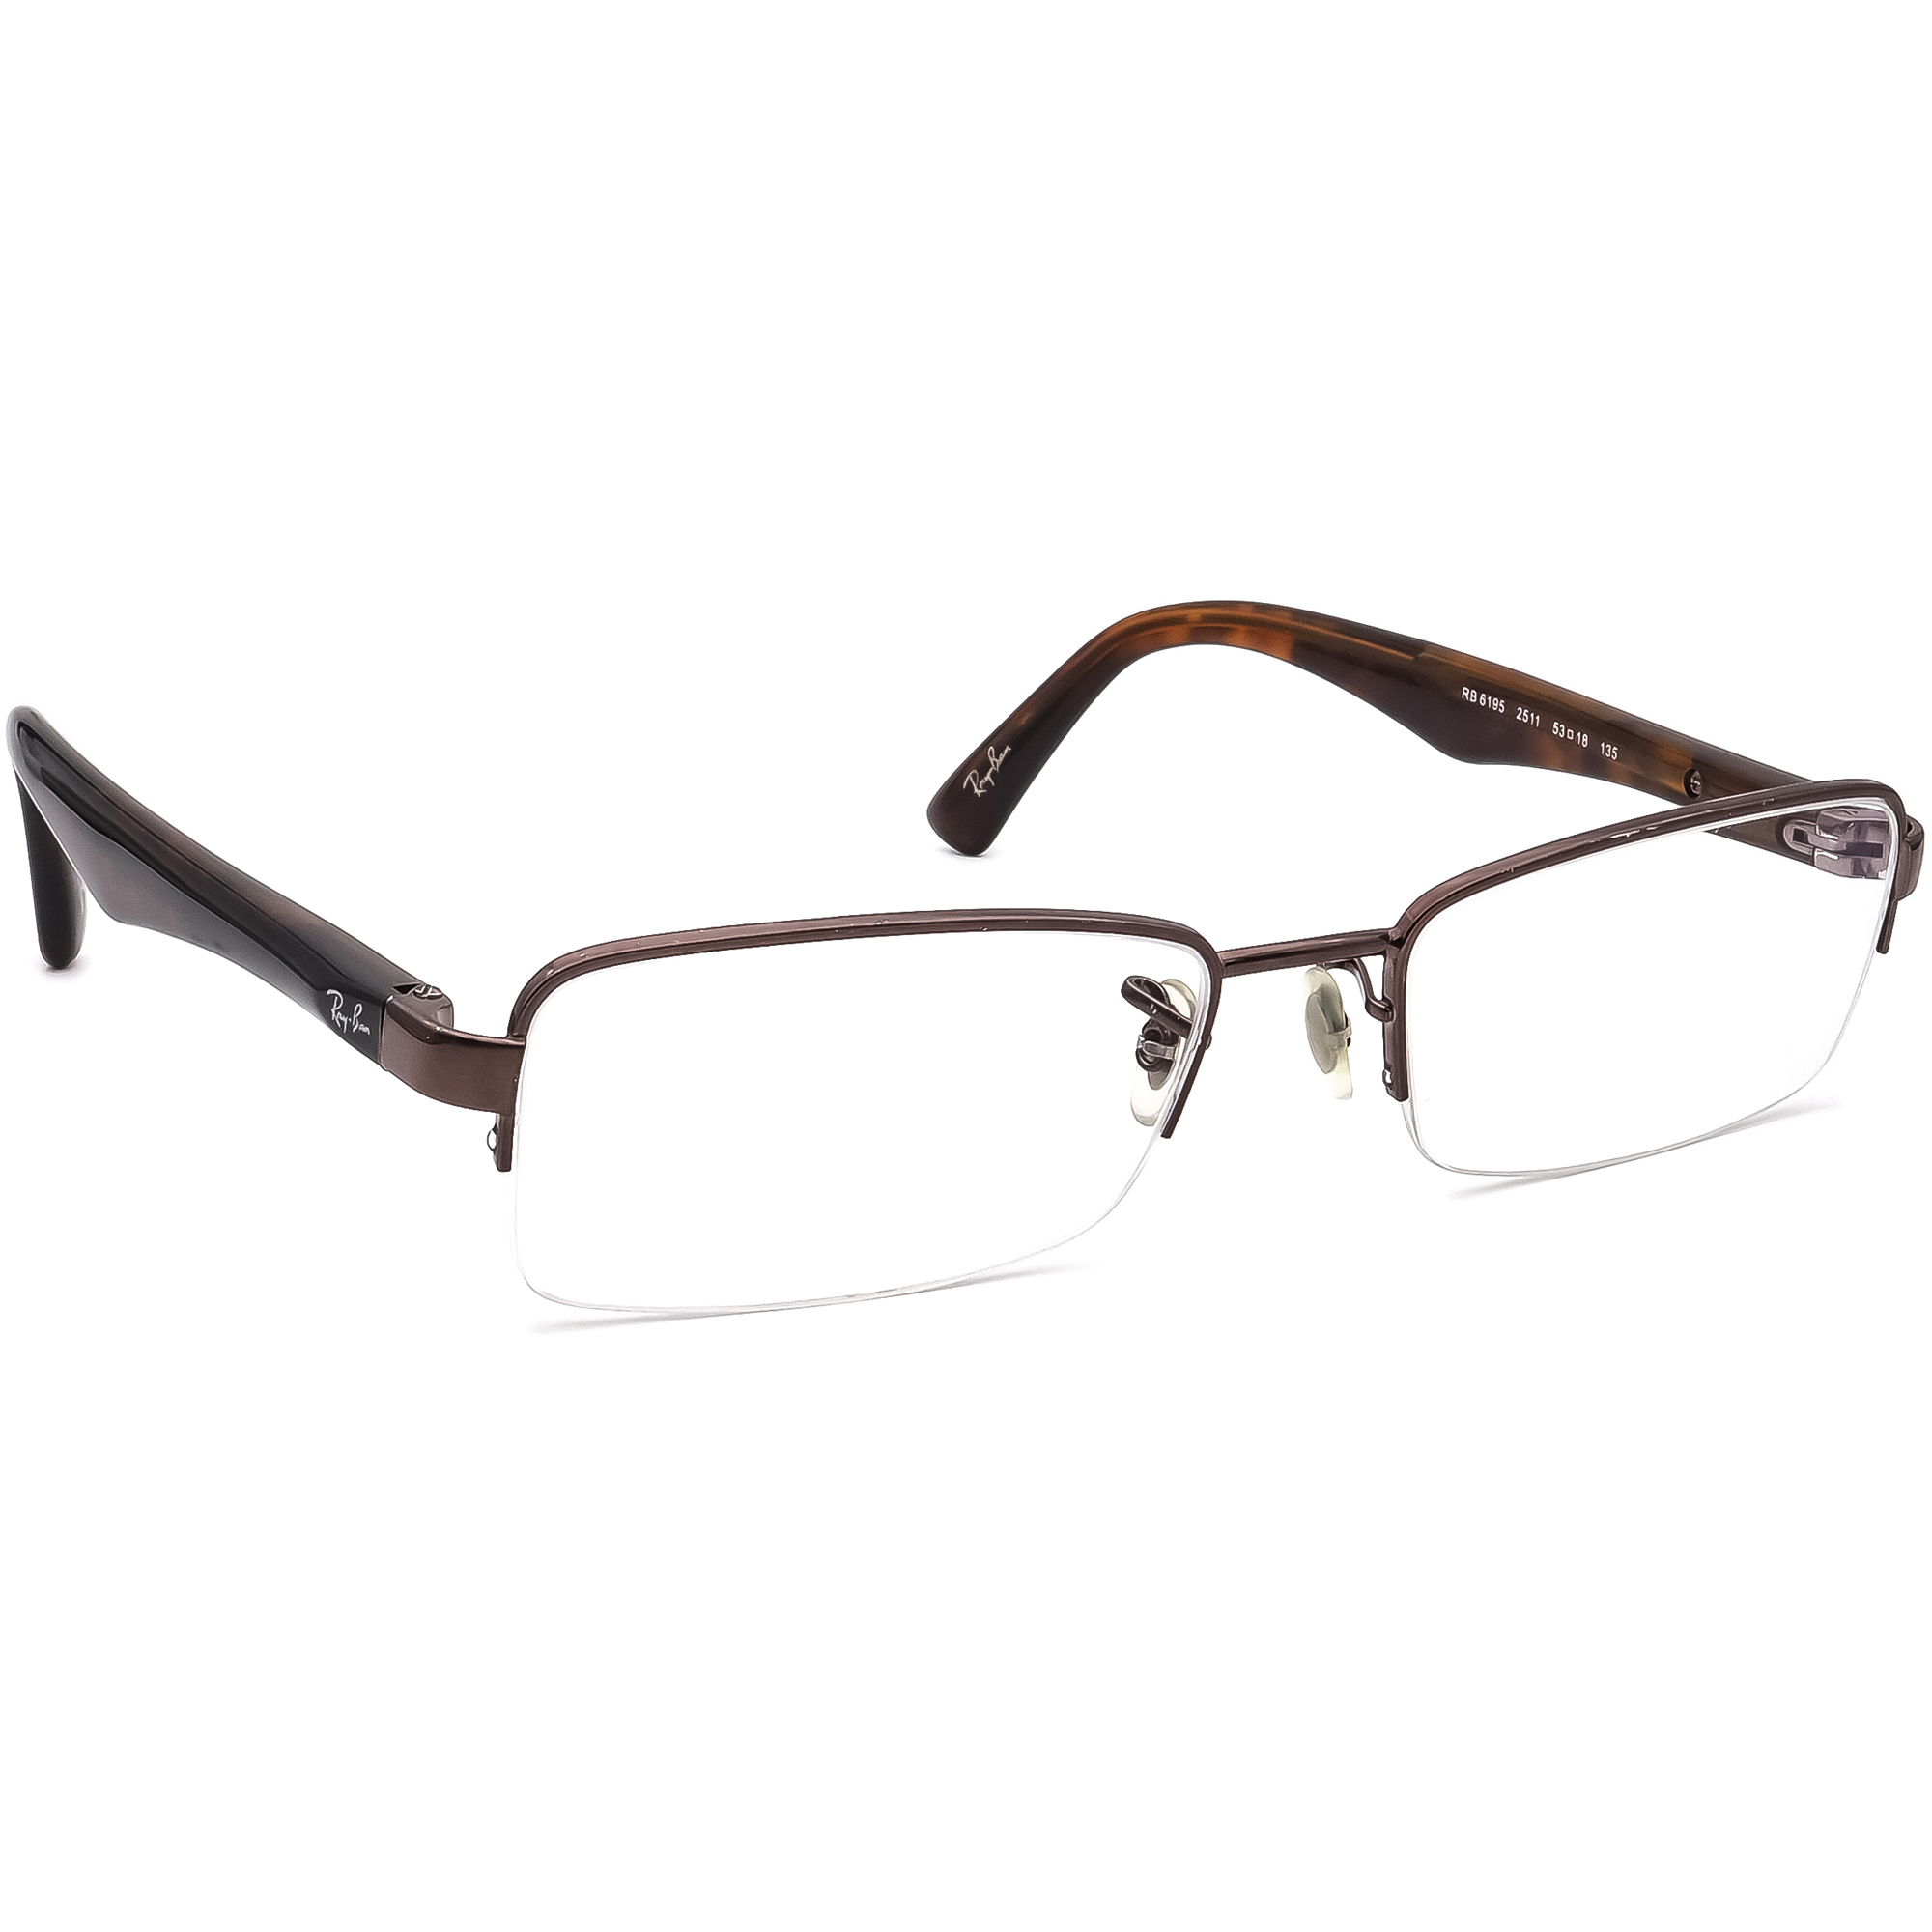 Ray Ban Eyeglasses RB 6195 2511 Brown/Tortoise Half Rim Frame 53[]18 135